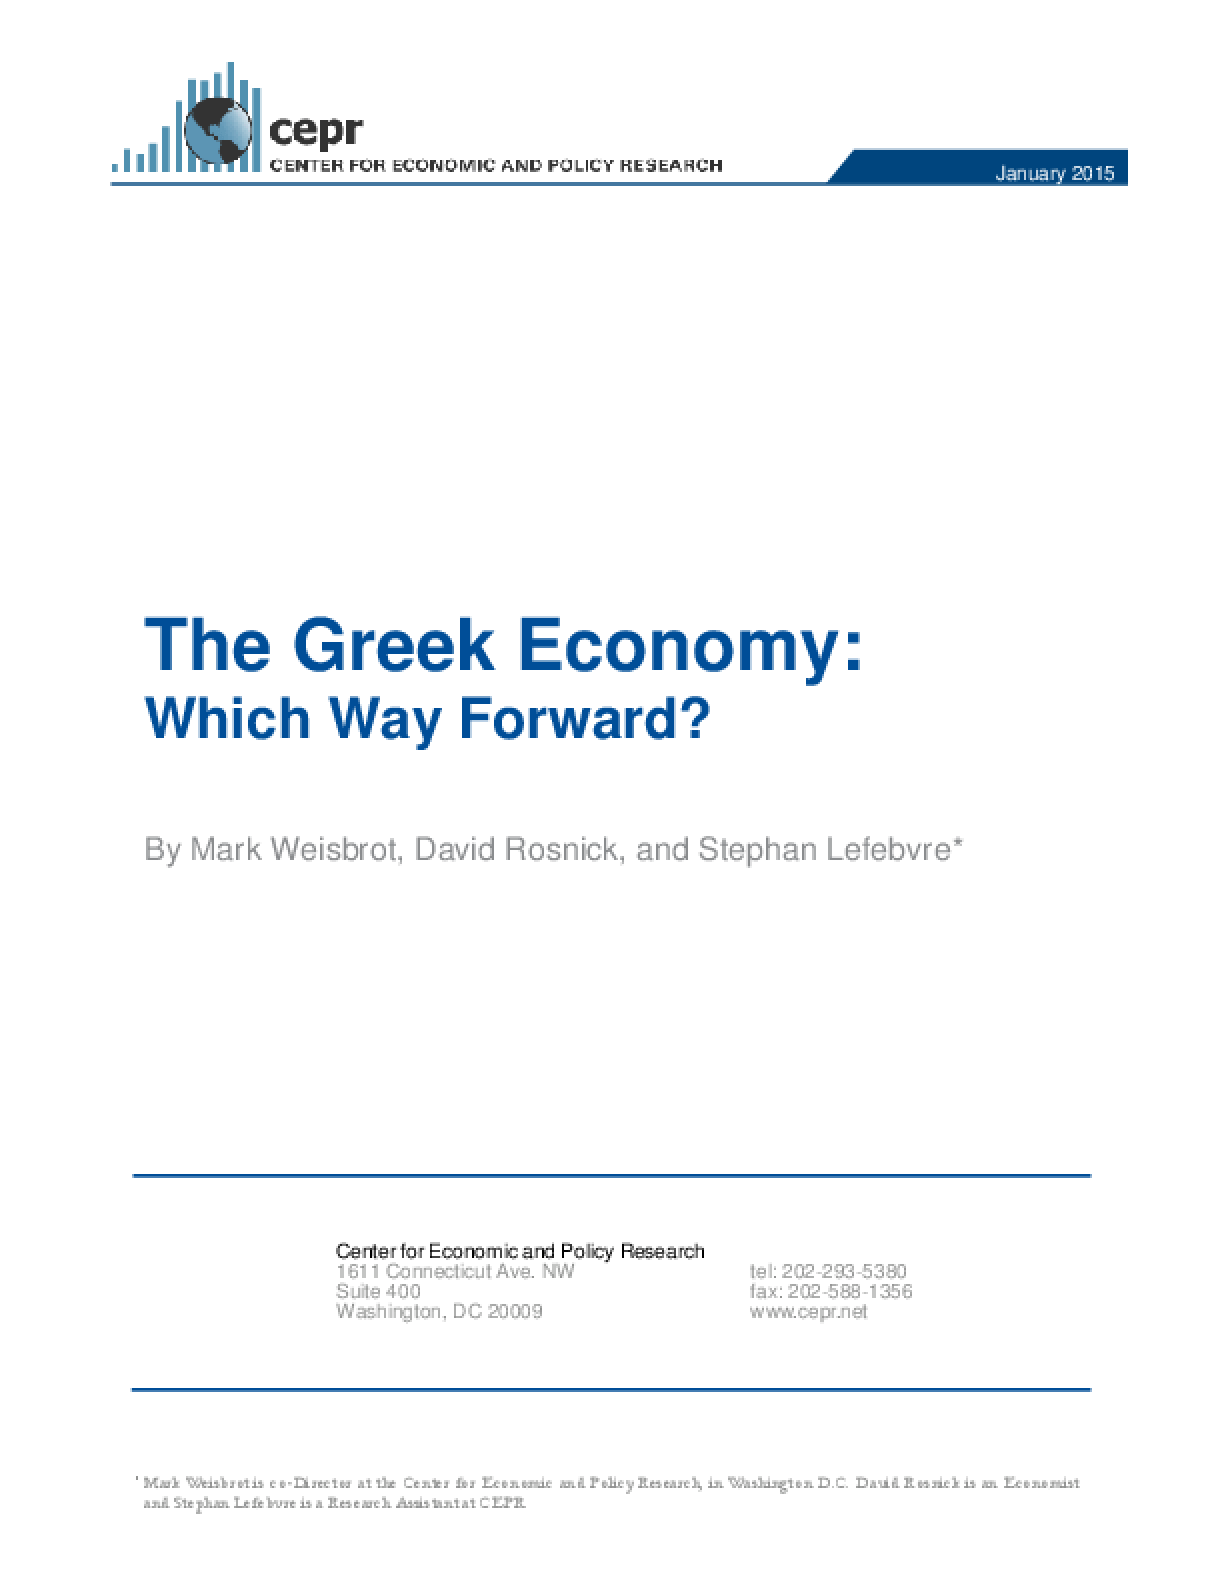 The Greek Economy: Which Way Forward?